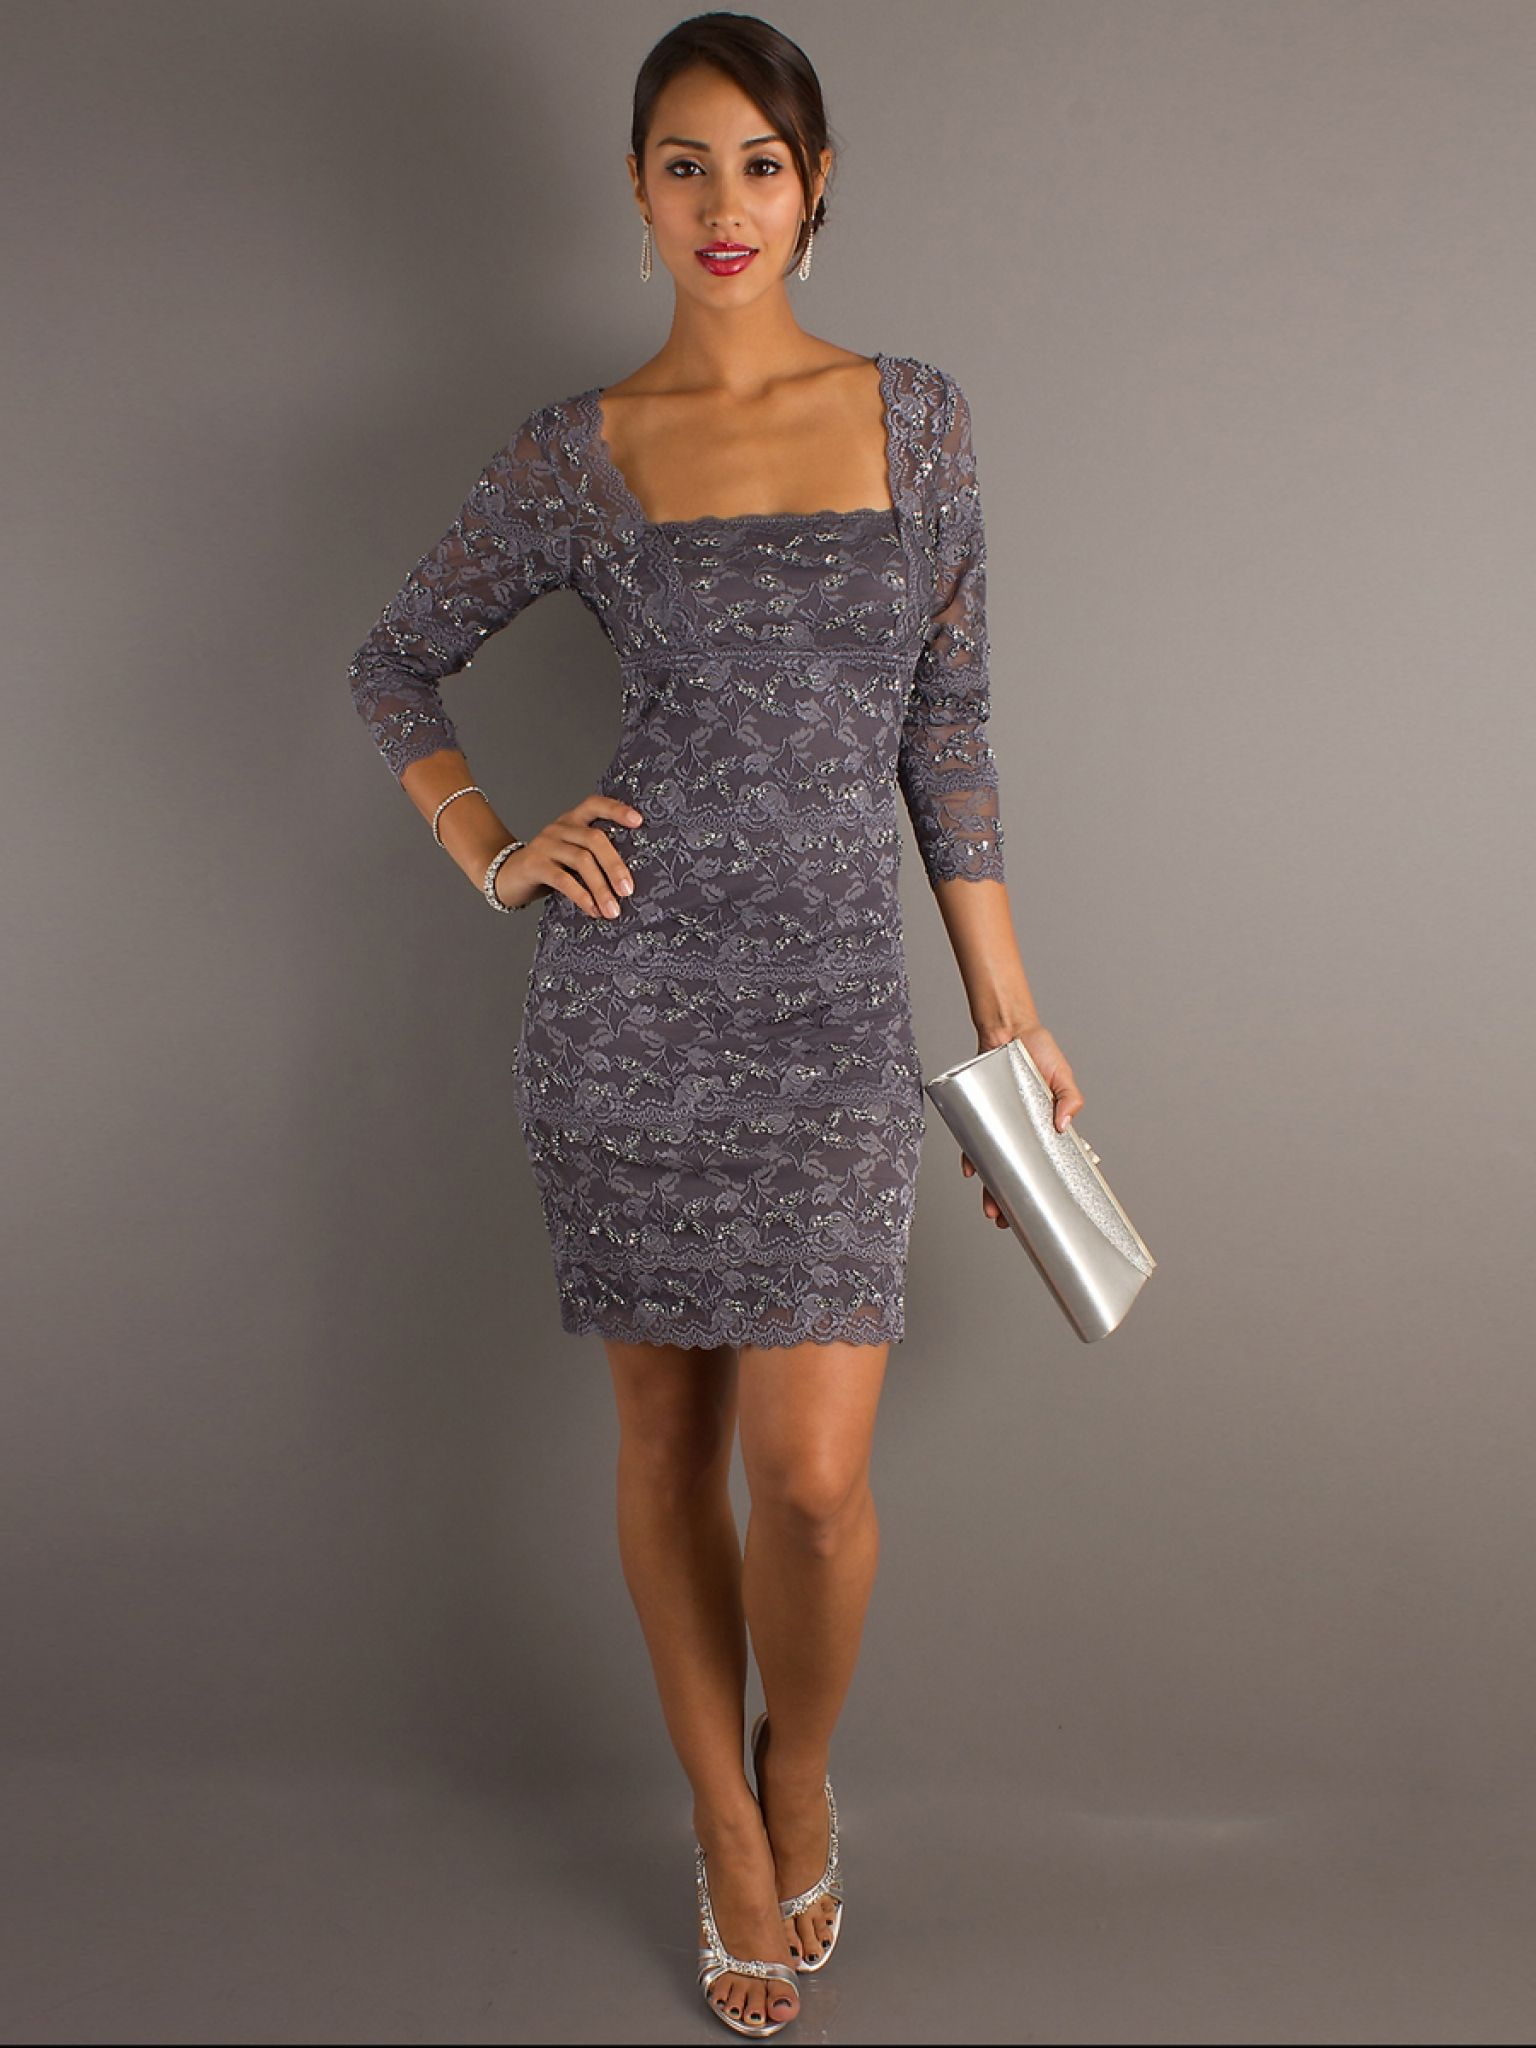 Grey Wedding Guest Dress Dresses For Party Check More At Http